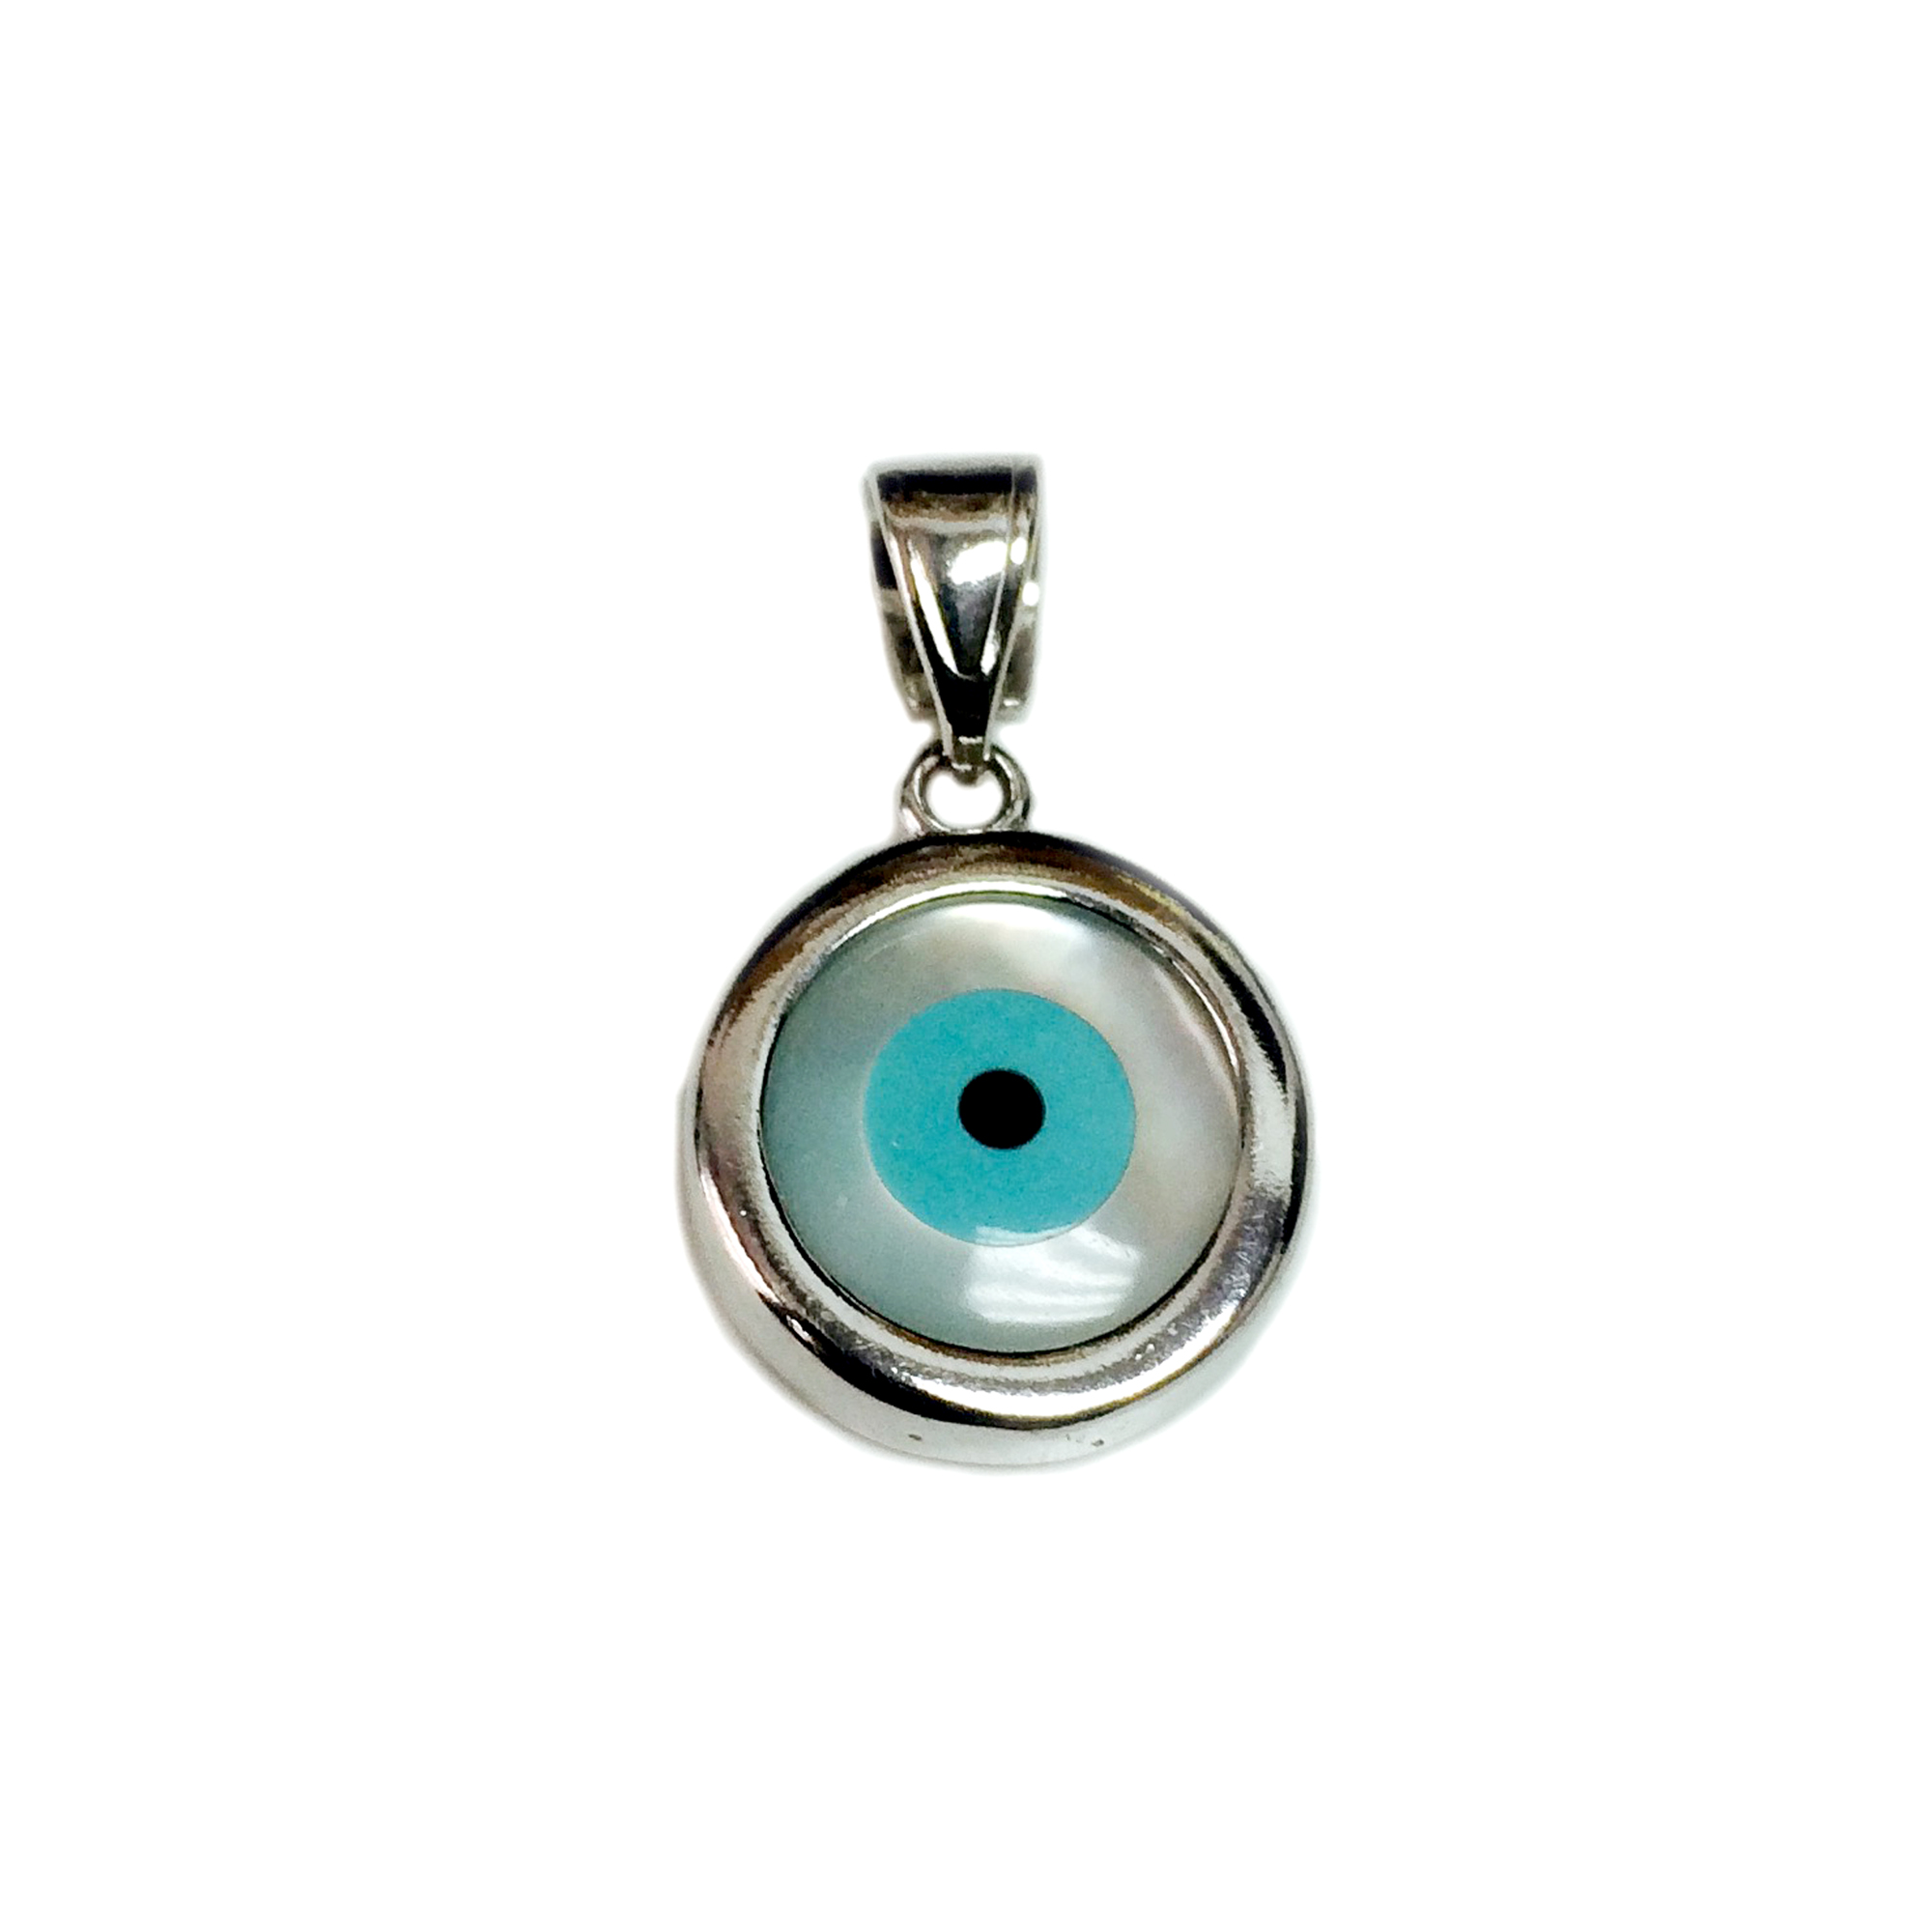 Sterling Silver Evil Eye Pendant Charm, 15mm Inspired from the of Greek ancient jewelry era, this sterling silver charm features the Evil Eye motif, also known as  Mati  in Greek, bordering a beautiful  glass Evil Eye. Measuring at 15mm diameter, this Greek evil eye is rhodium plated for better tarnish resistance.